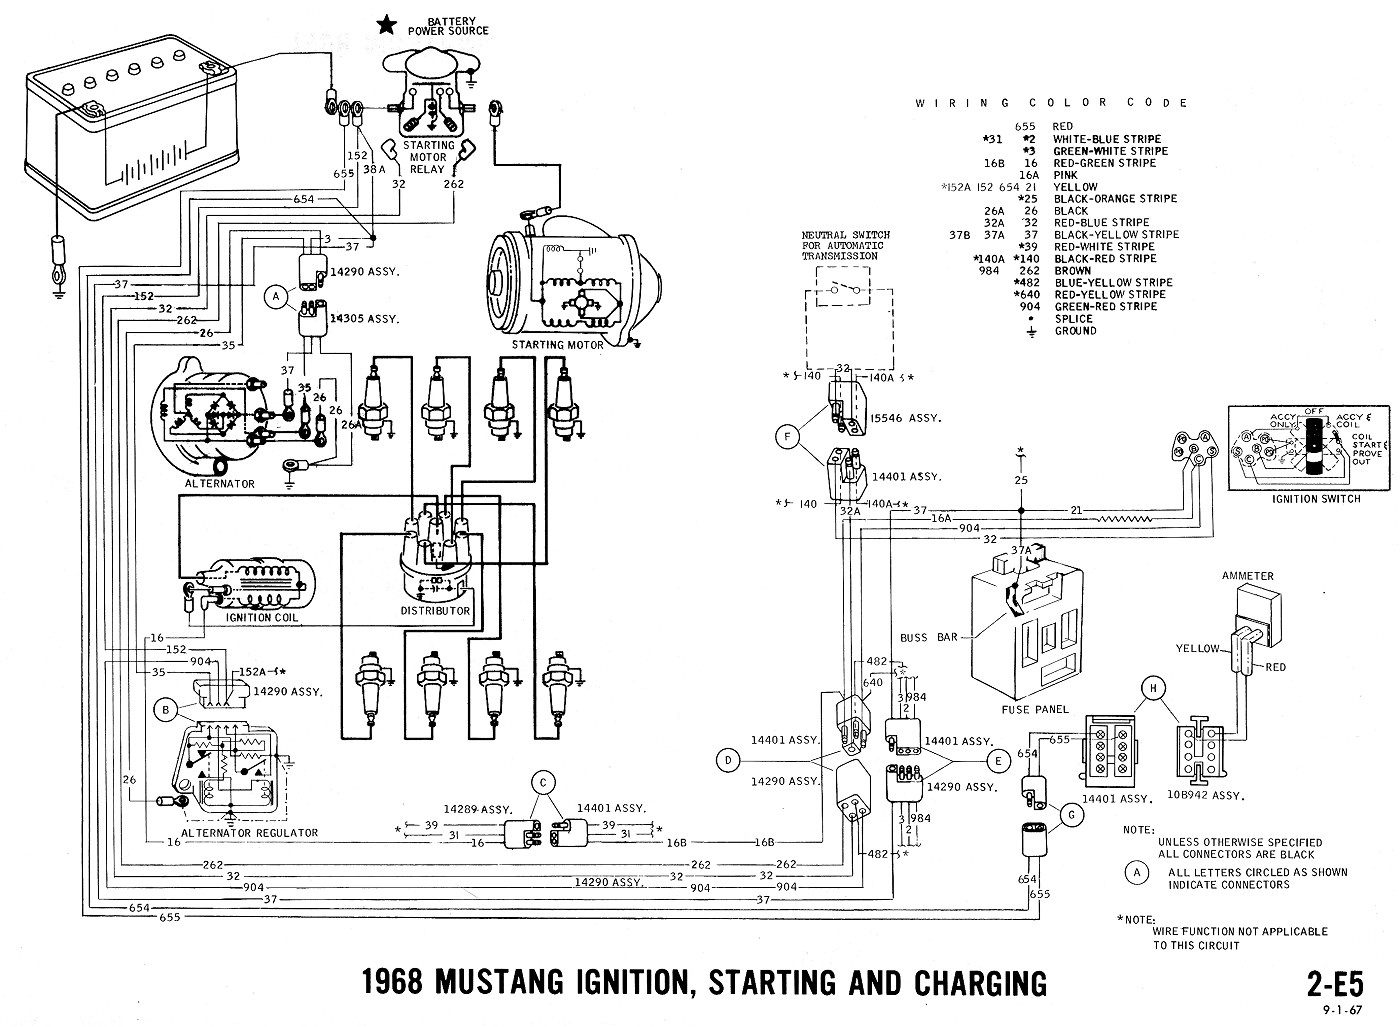 E5 1968 mustang wiring diagrams evolving software 1965 mustang heater wiring diagram at cos-gaming.co